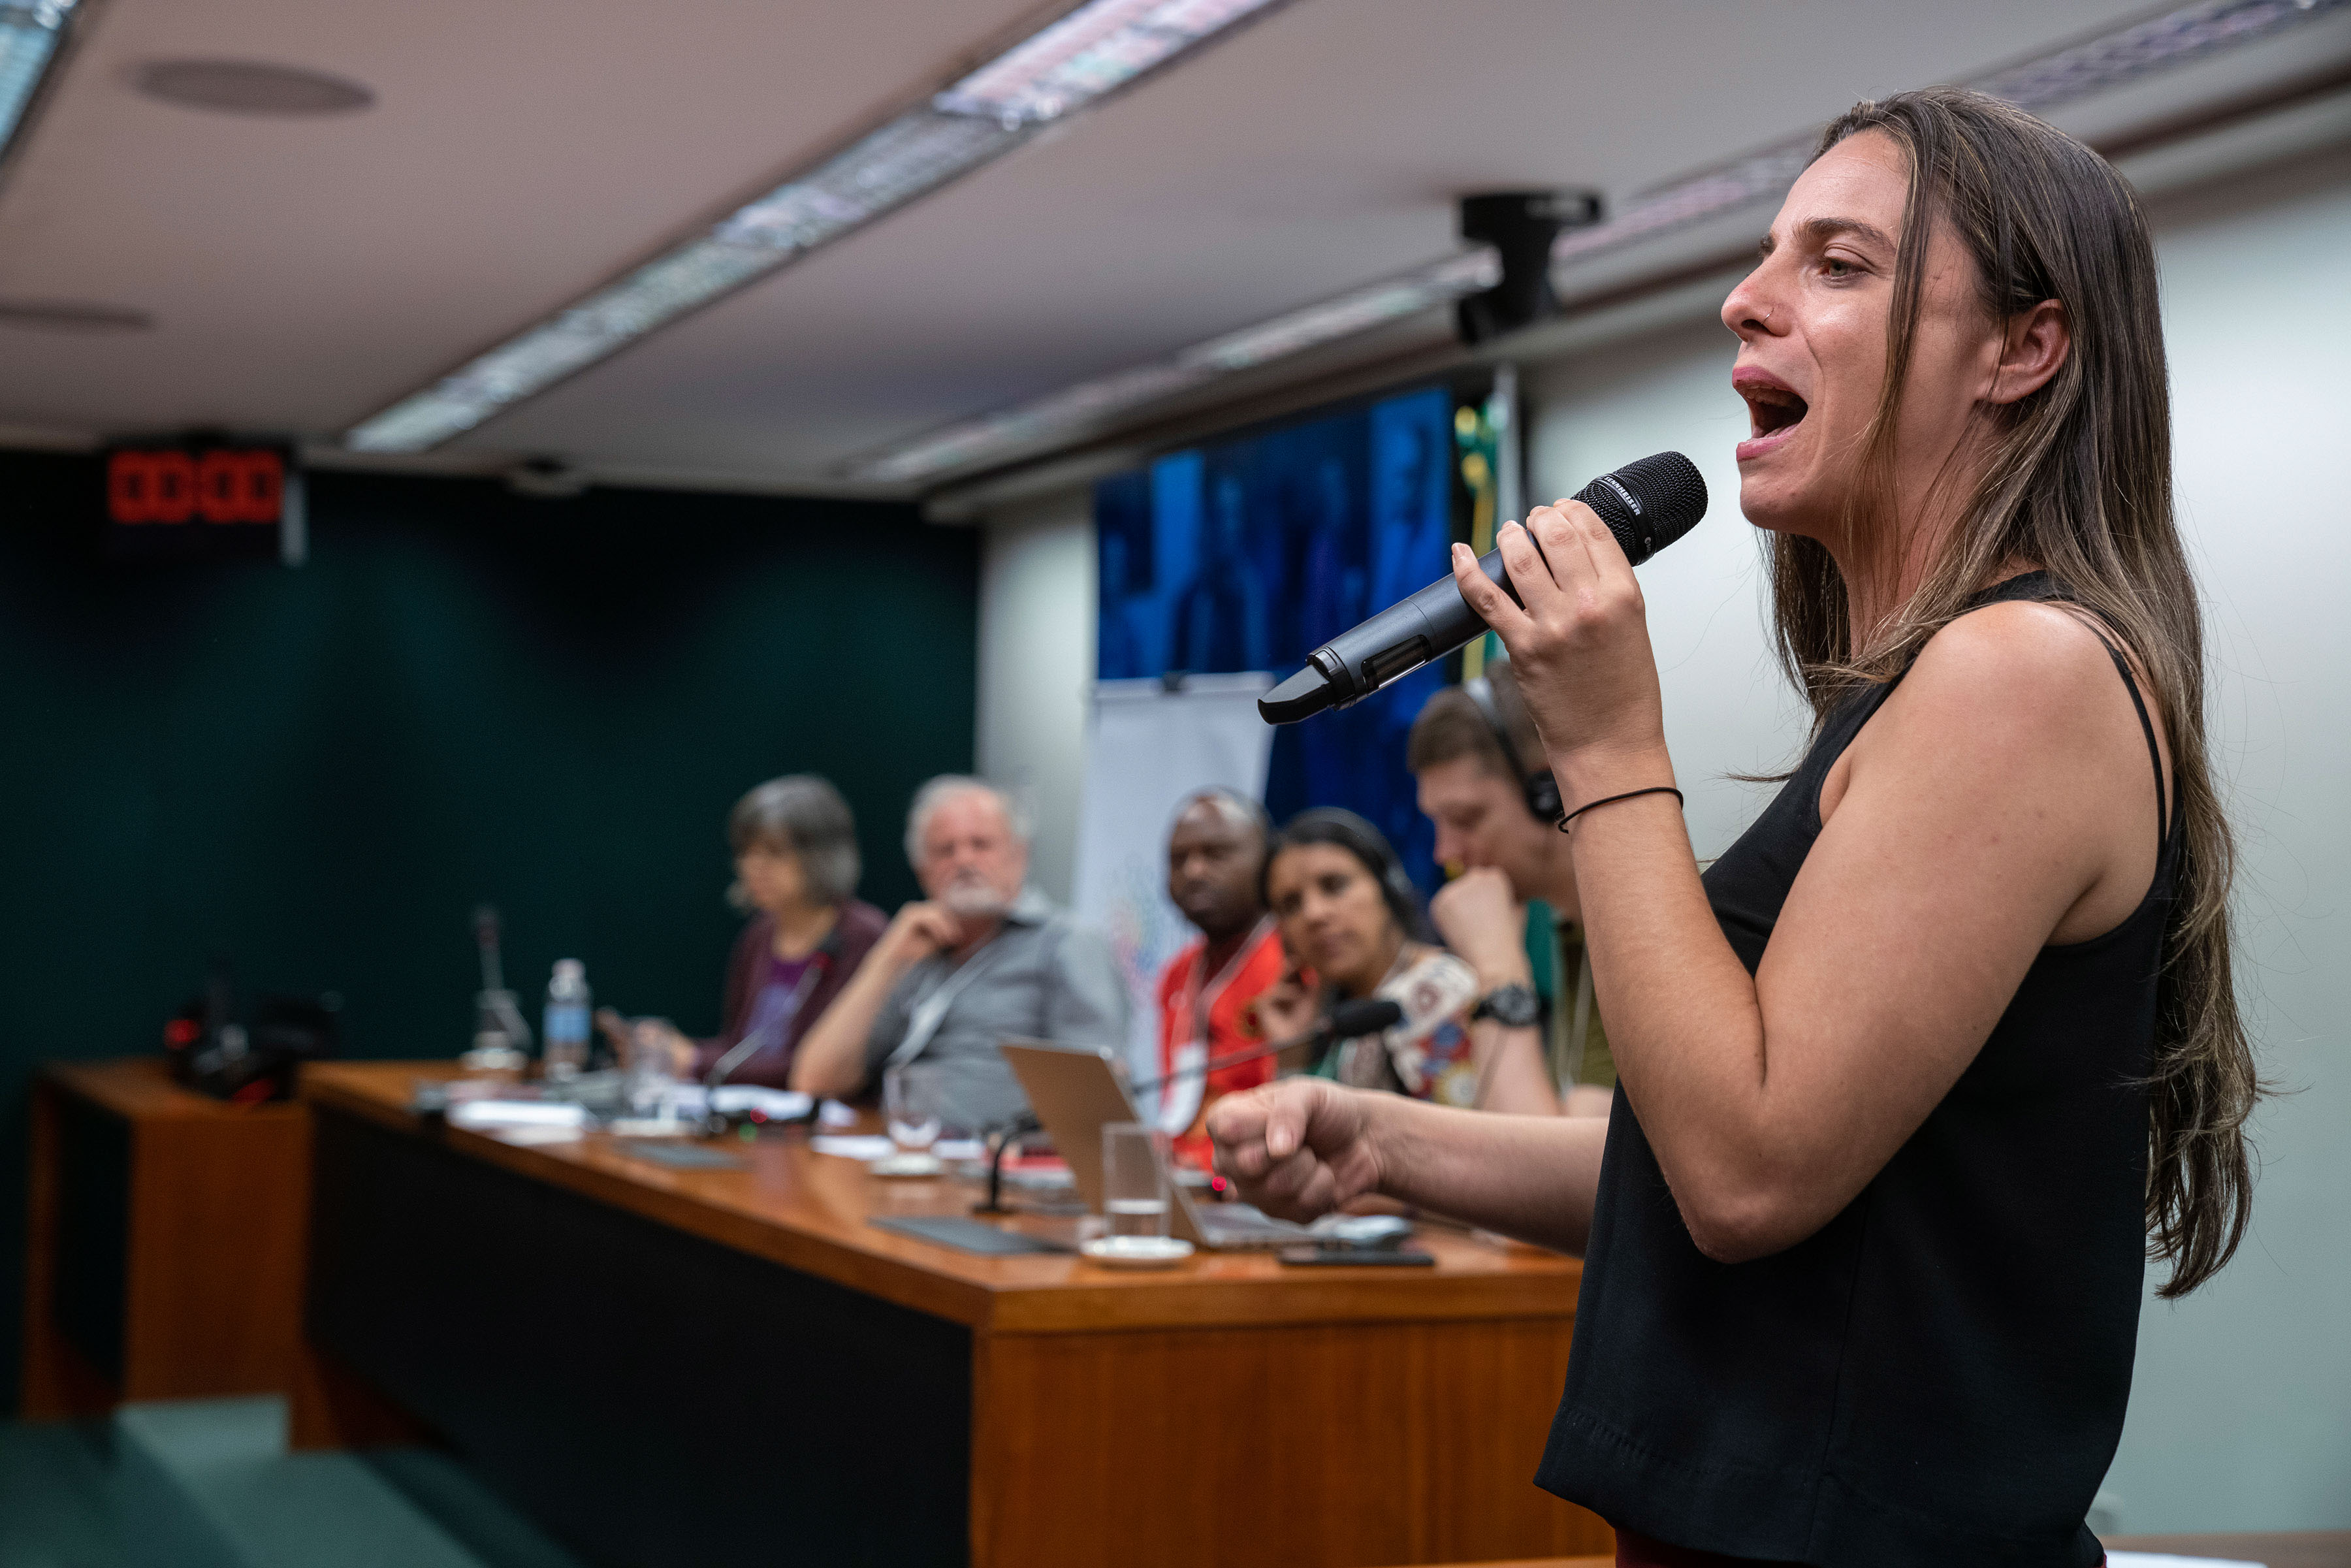 12 November 2019: Brazilian politician Fernanda Melchionna said a military coup was taking place in Bolivia with the possible help of foreign powers, including Brazil, and that the economic elite in Bolivia were leading it.